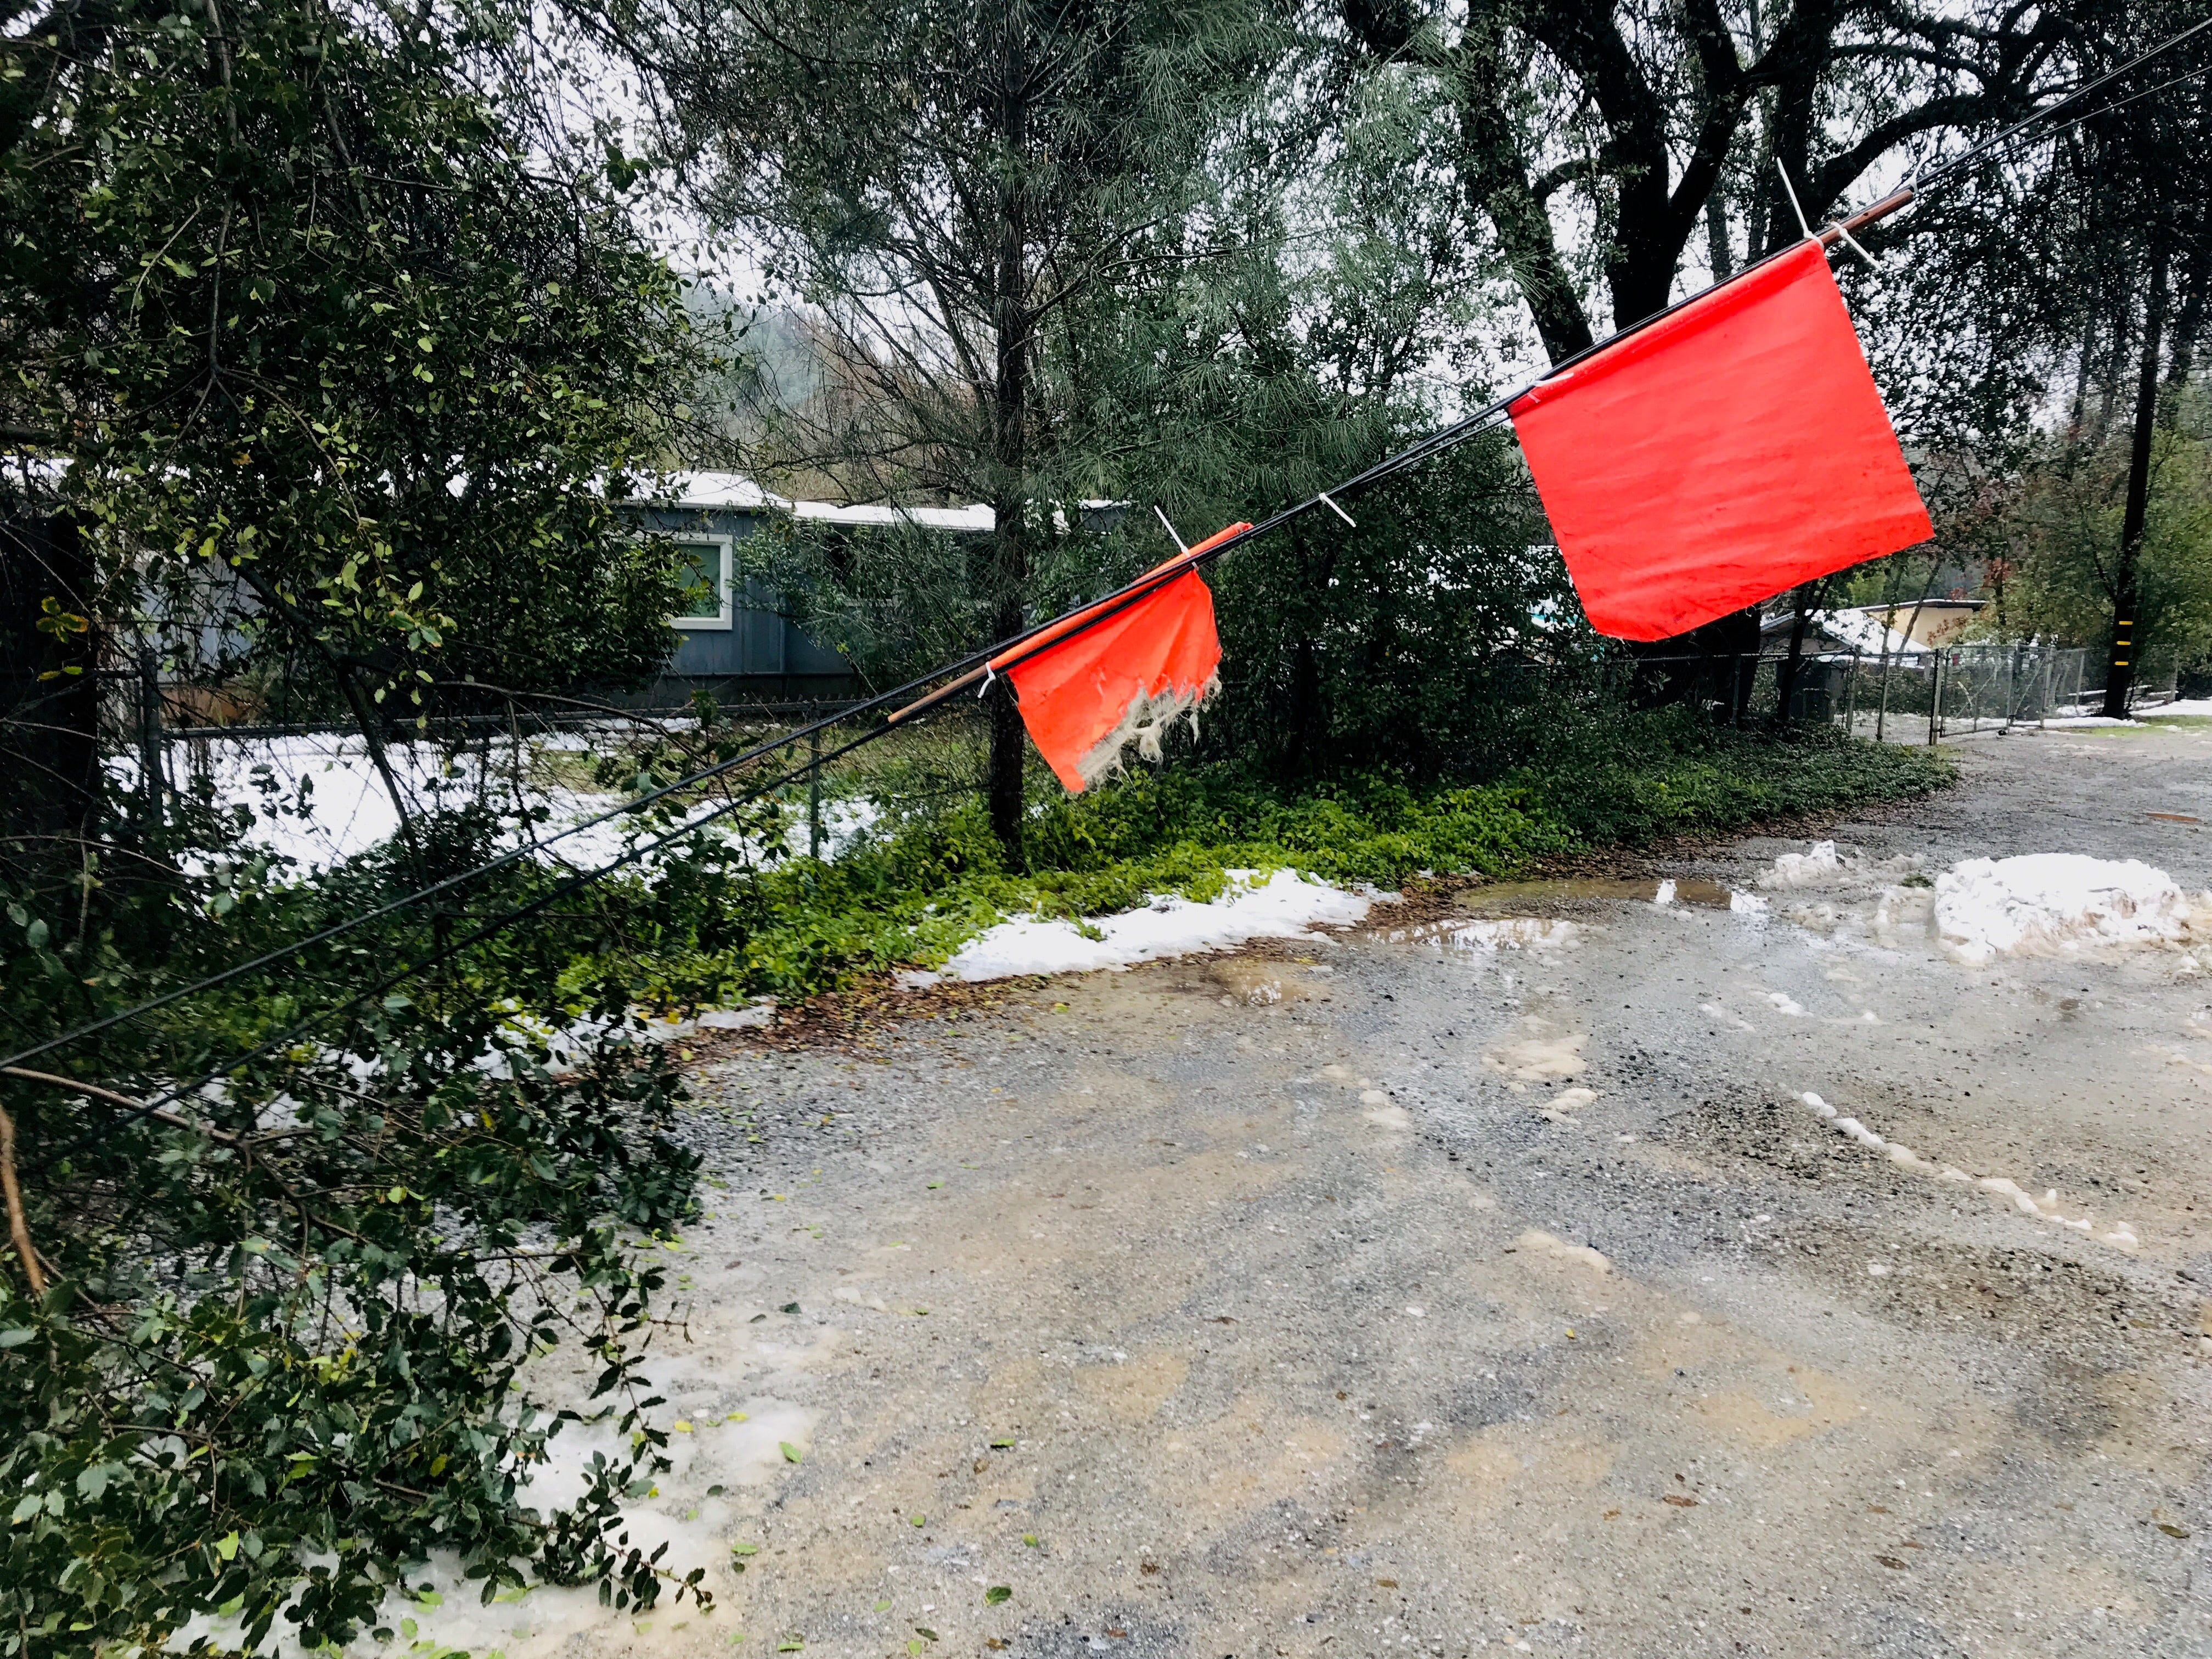 A downed power line has been flagged Thursday, Feb. 14, 2019 on Mussel Shoals Avenue in Shasta Lake, California.